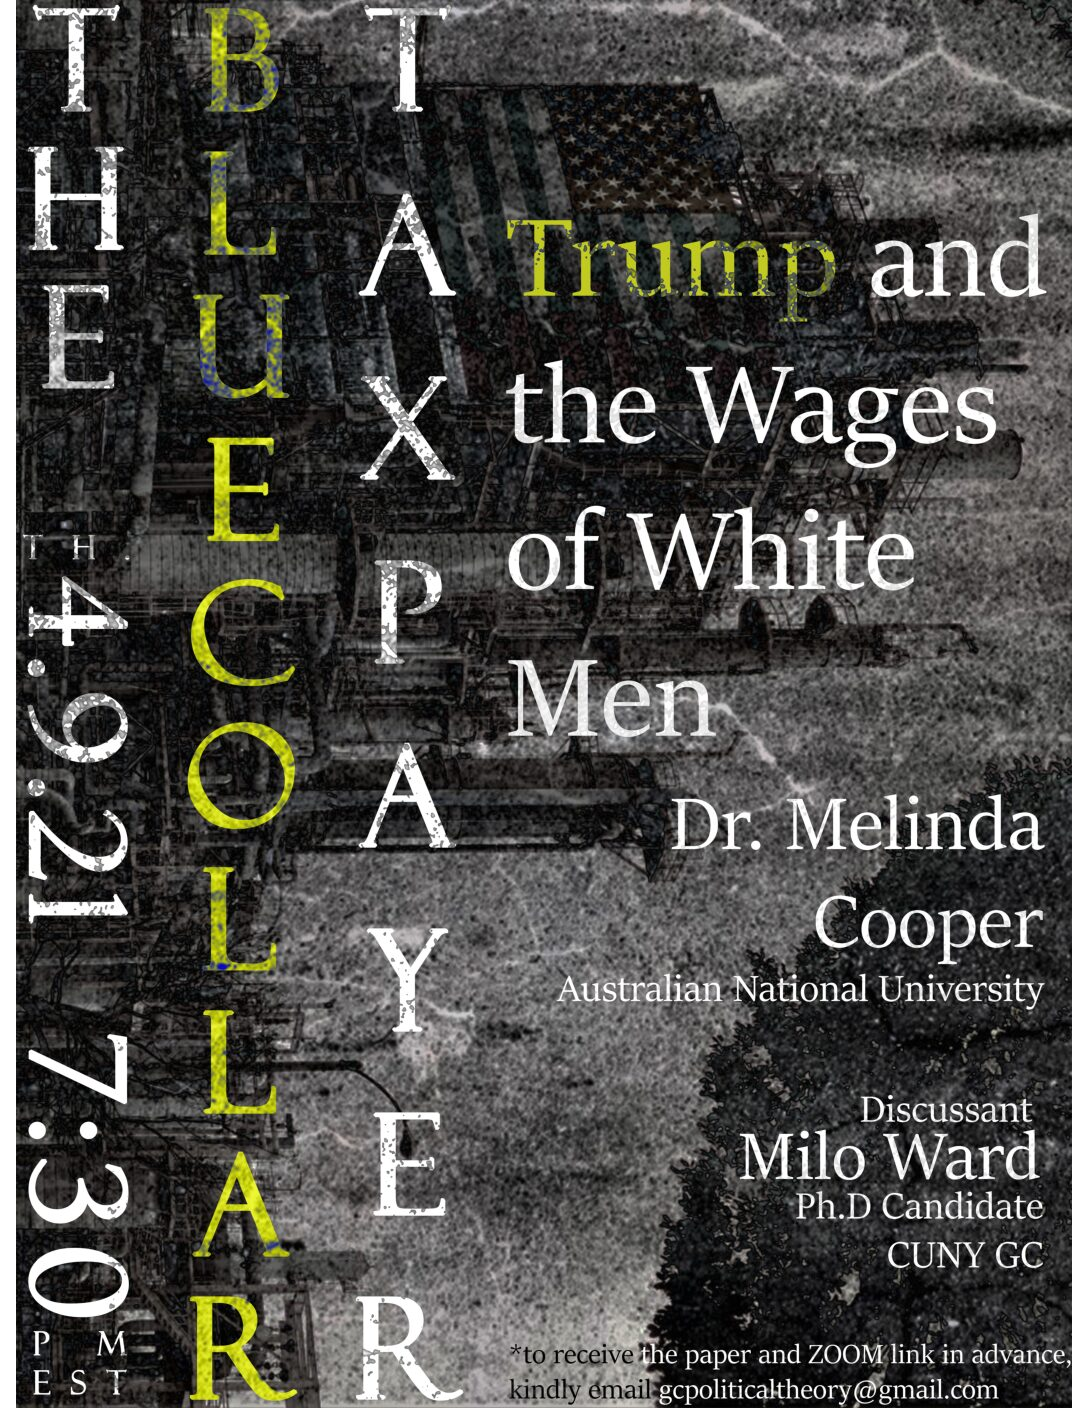 """Political Theory Workshop: Melinda Cooper, """"The Blue-Collar Taxpayer: Trump and The Wages of White Men,"""" Friday, April 9, 7:30-9:30pm"""